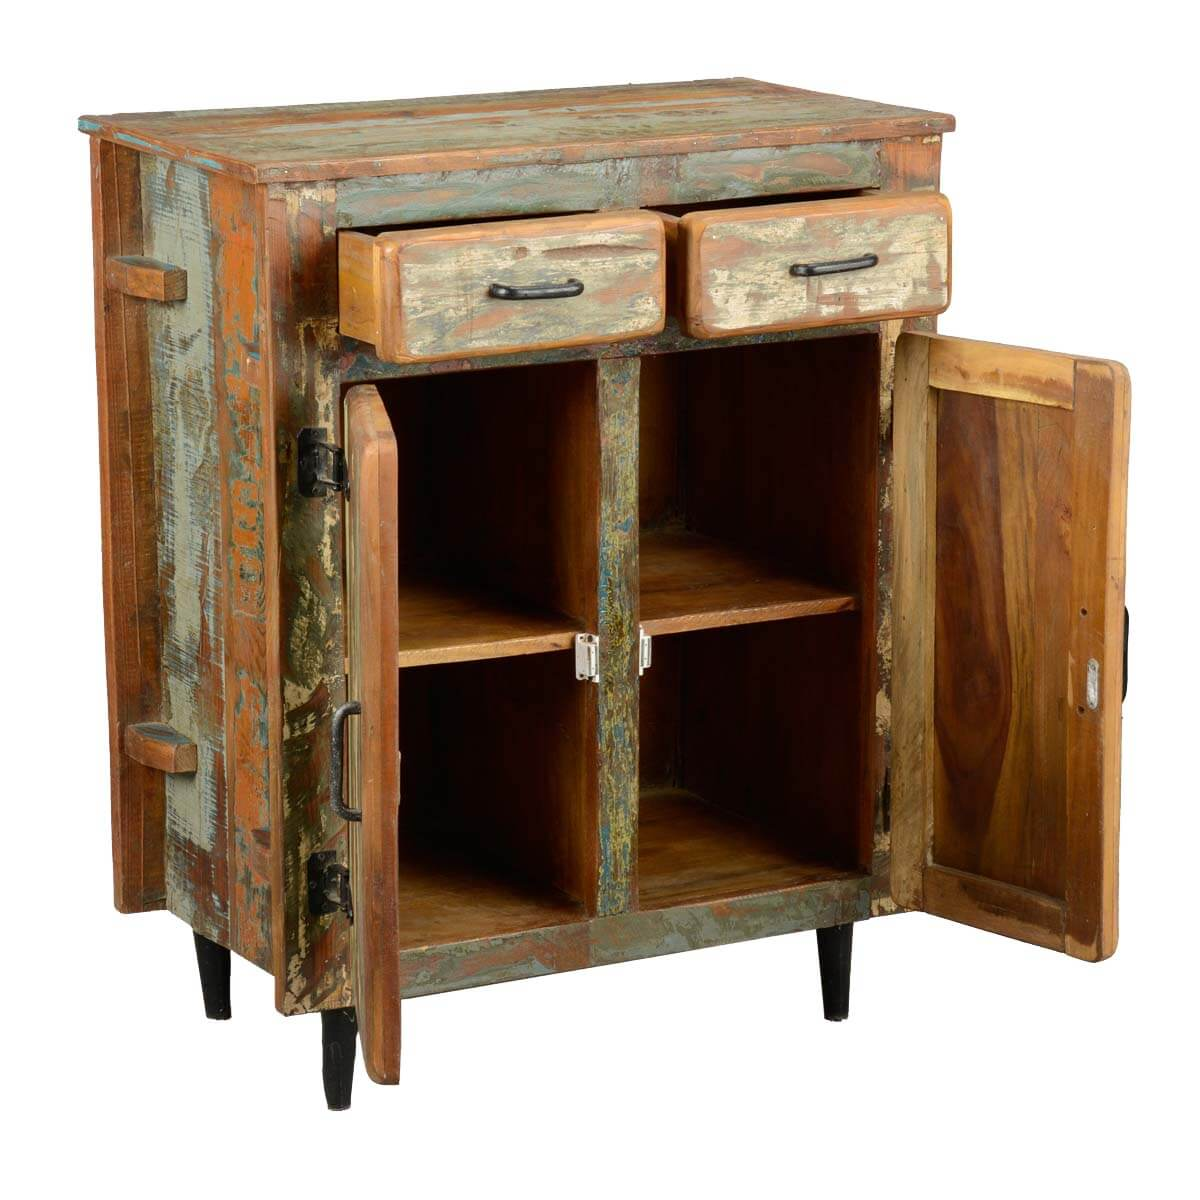 Reclaimed Wood Kitchen Cabinets: Fabius Rustic Reclaimed Wood 2 Drawer Freestanding Storage